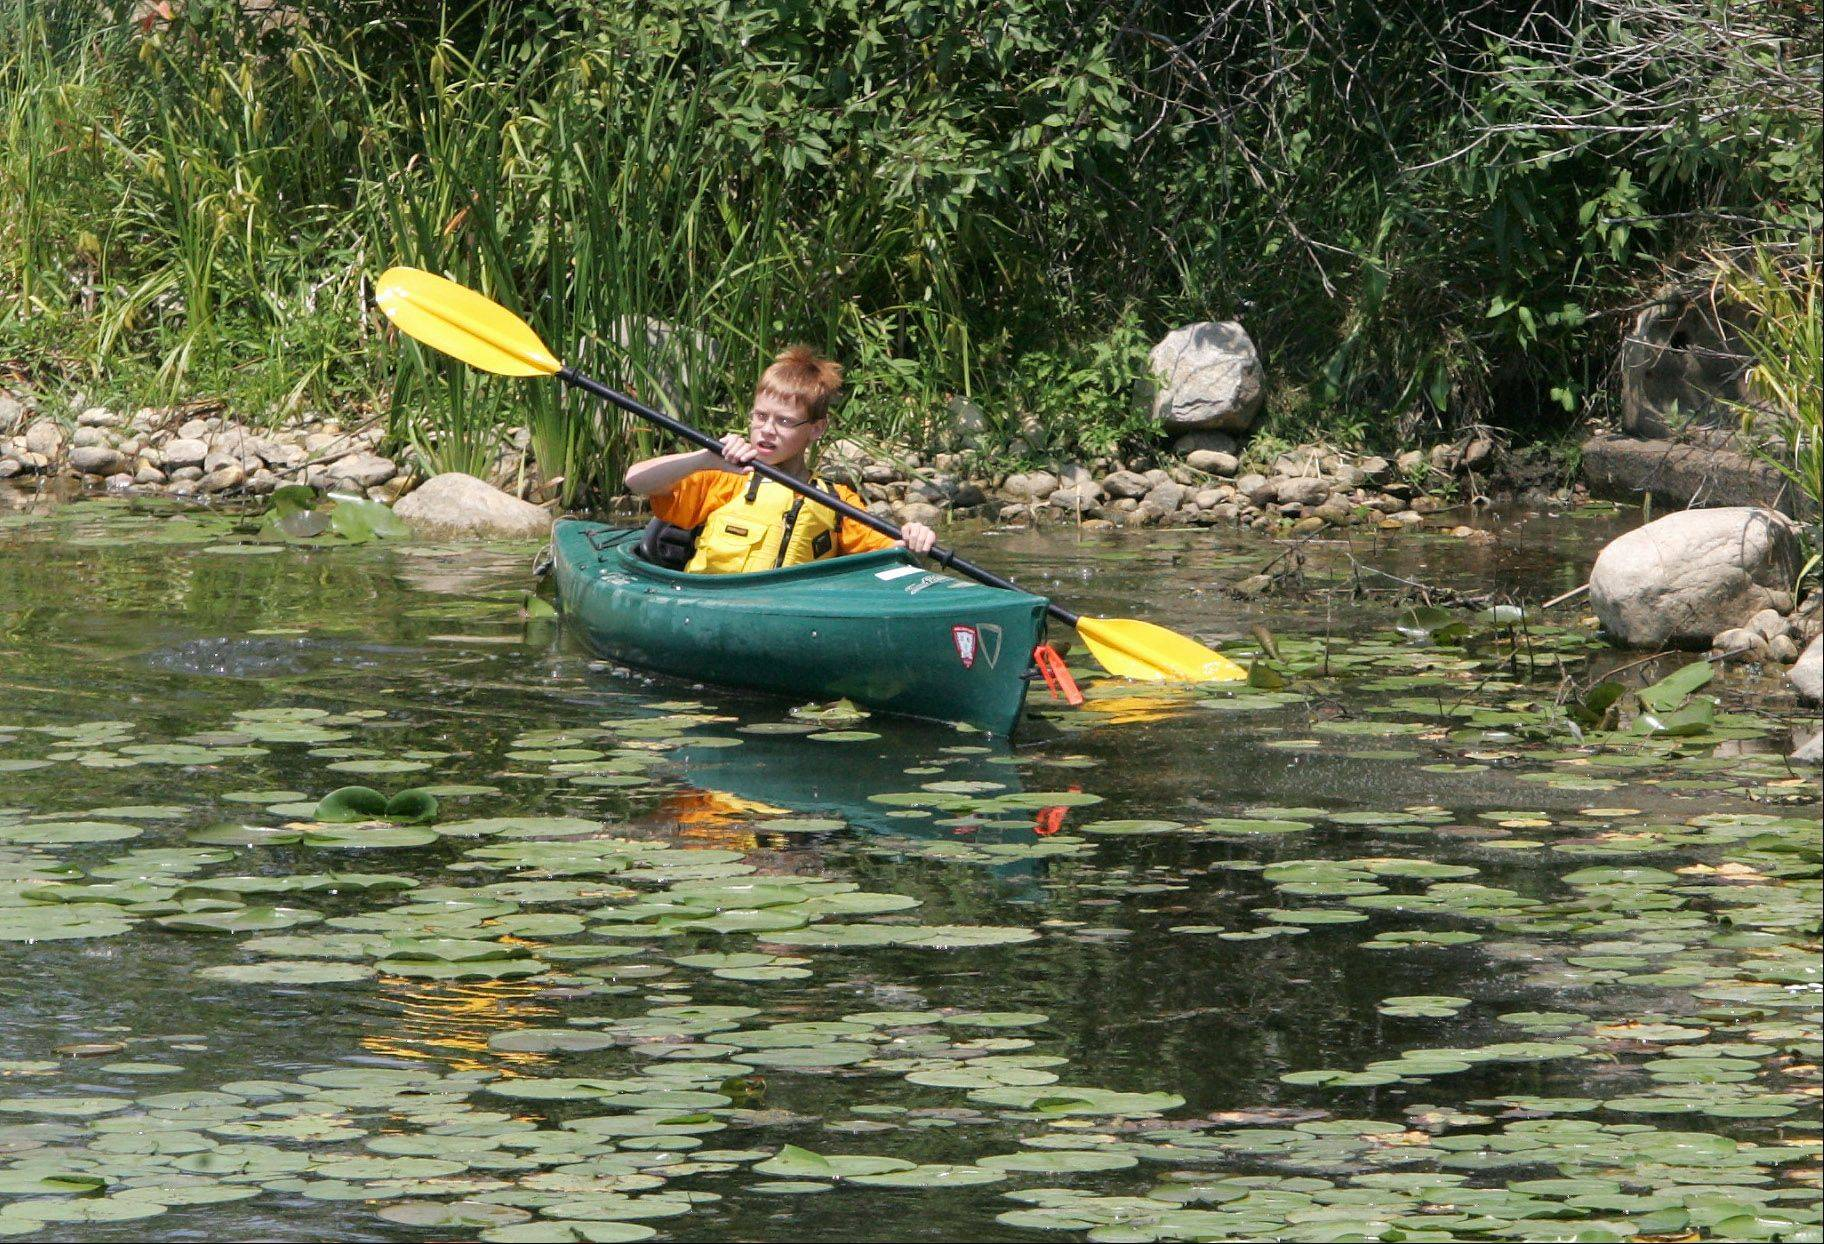 Zach Huseen, 13, of Wauconda paddles through the water lilies as members of the Adventures in Nature Camp kayak on a lake at Independence Grove Forest Preserve in Libertyville. The weeklong summer camp, run by the Lake County Forest Preserve District, included an obstacle course, biking, swimming and hiking.